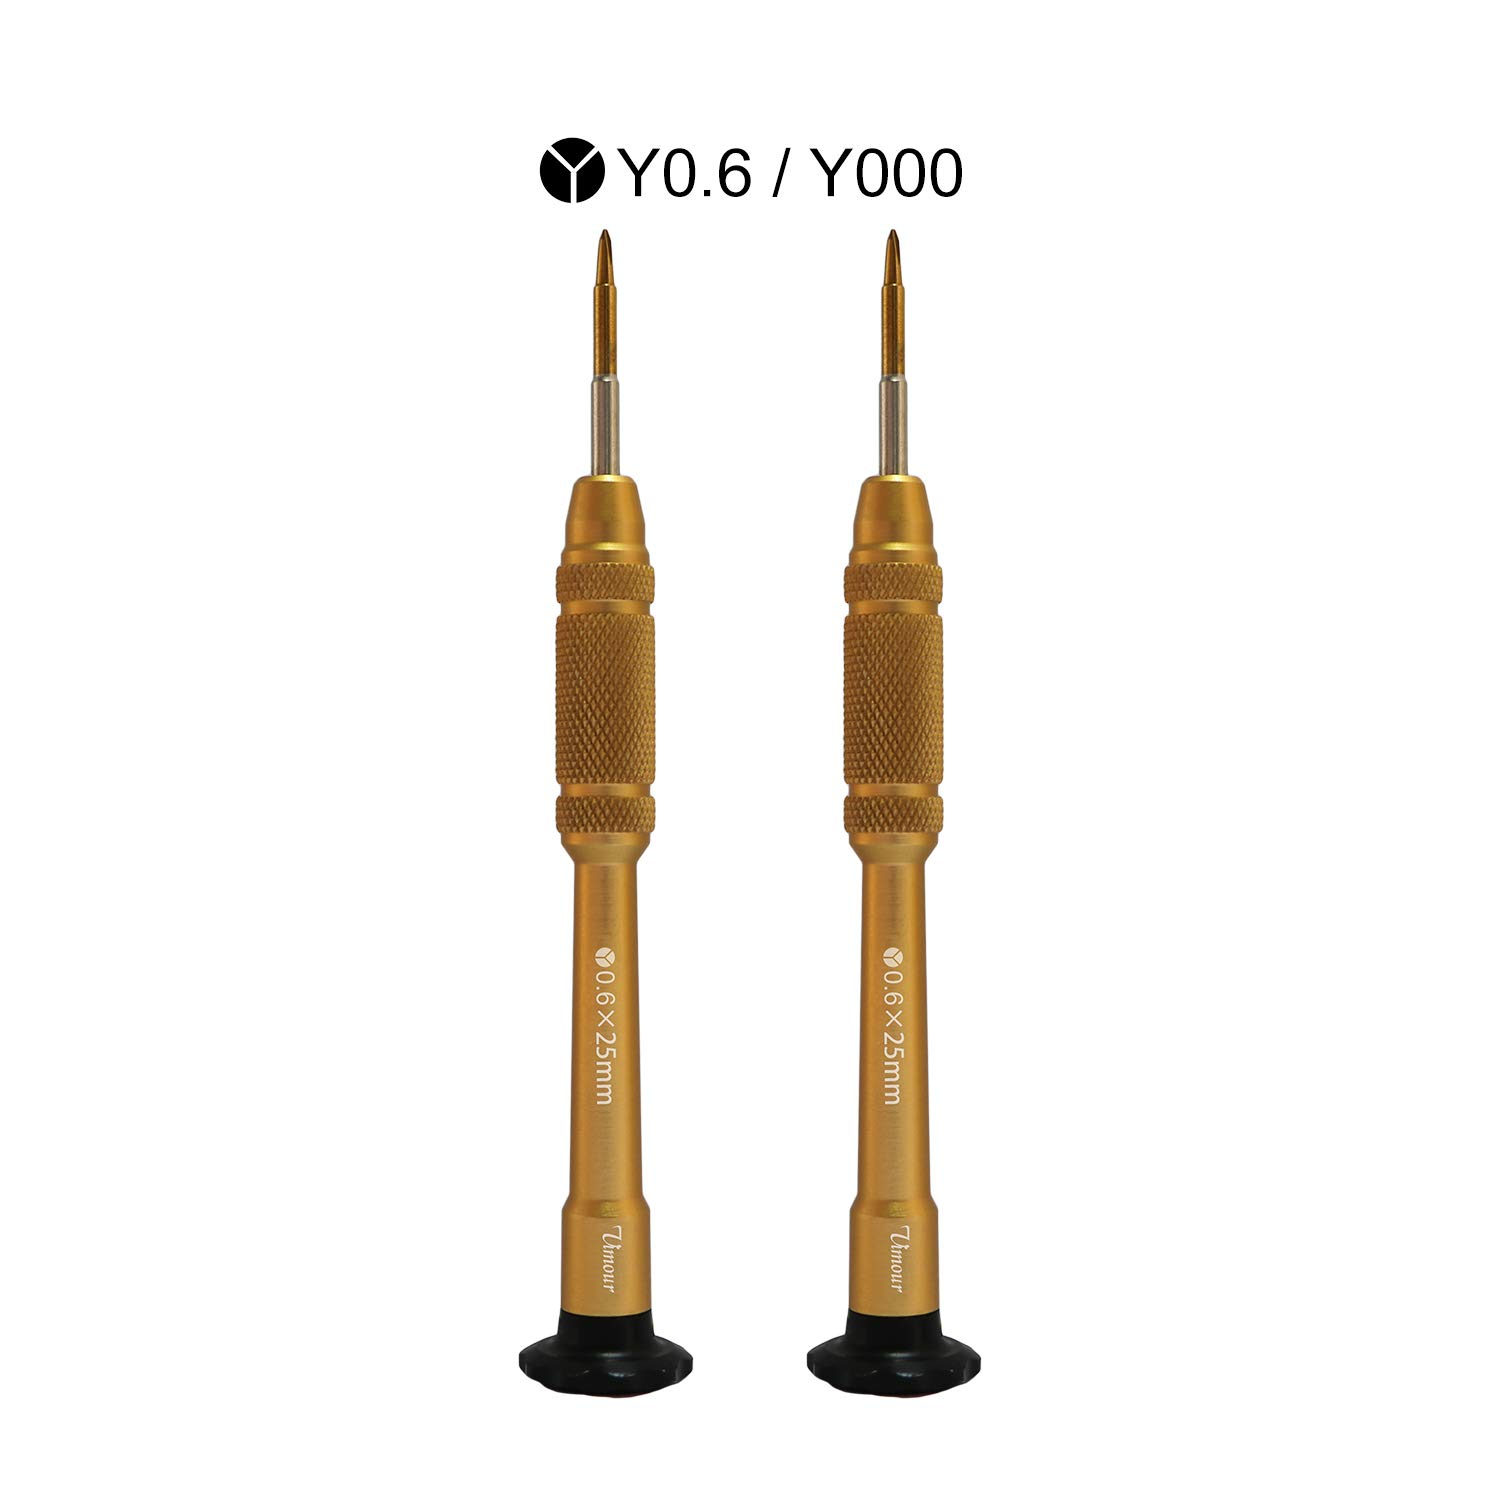 Tripoint Y000 Screwdriver Tripoint Y000 Screwdriver Triwing 0.6 mm Y-Tip 0.8 Pentalobe Screwdriver set 4 in 1 For iPhone 7 8 Plus X XS Max and up